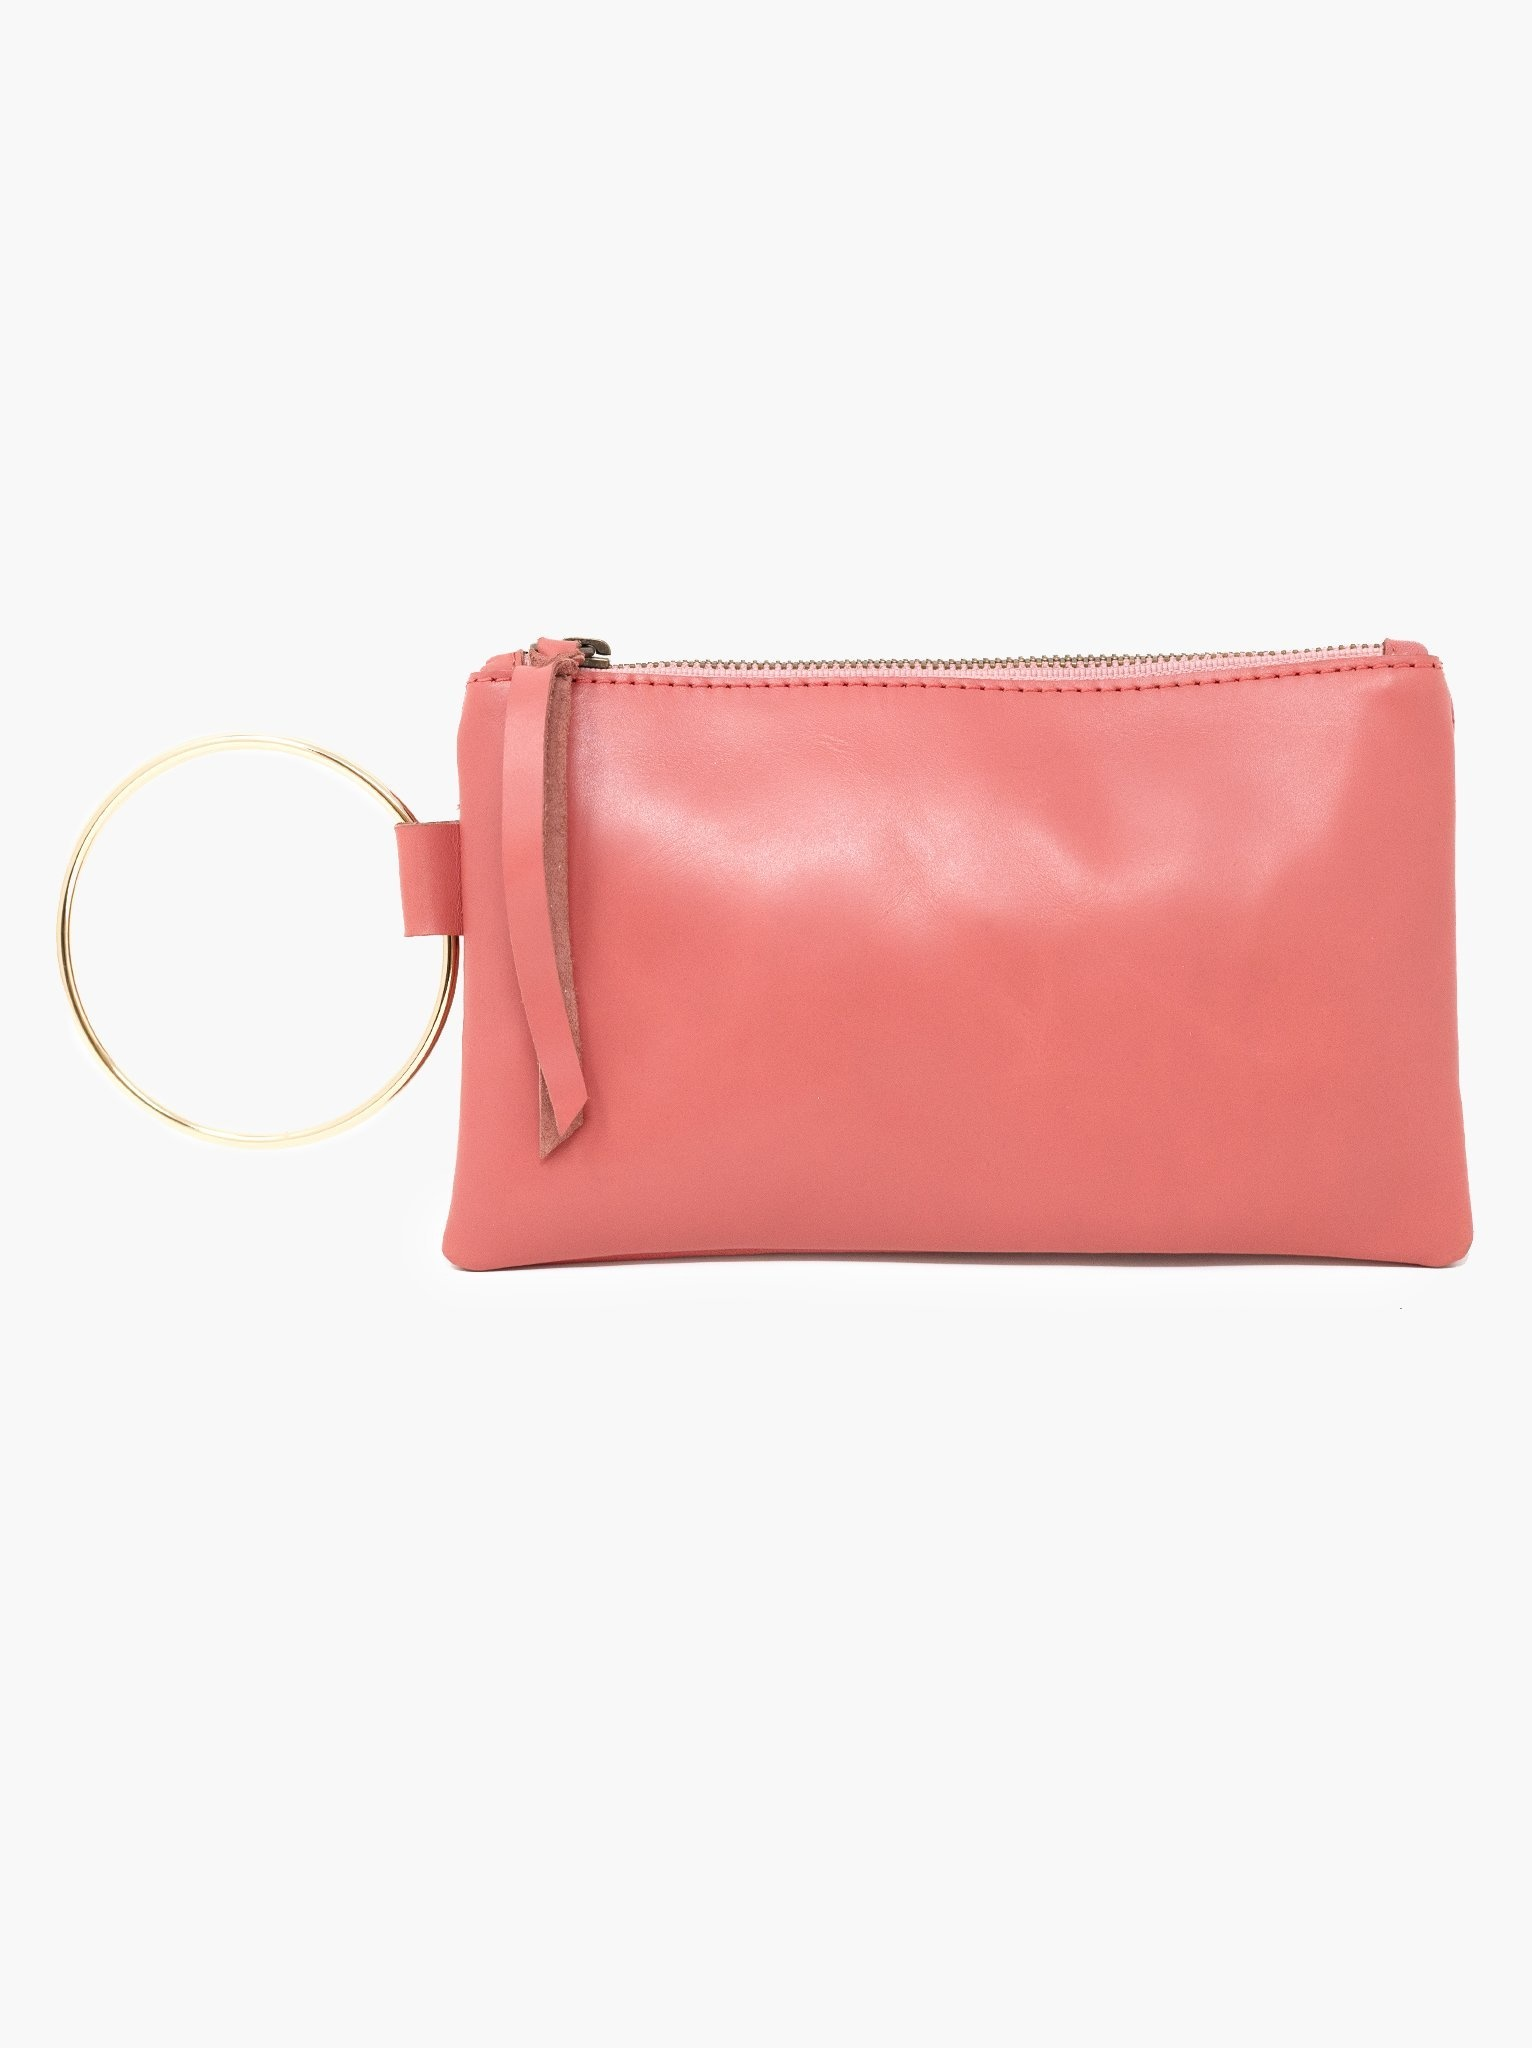 Able Fozi Wristlet - Rose Metallic